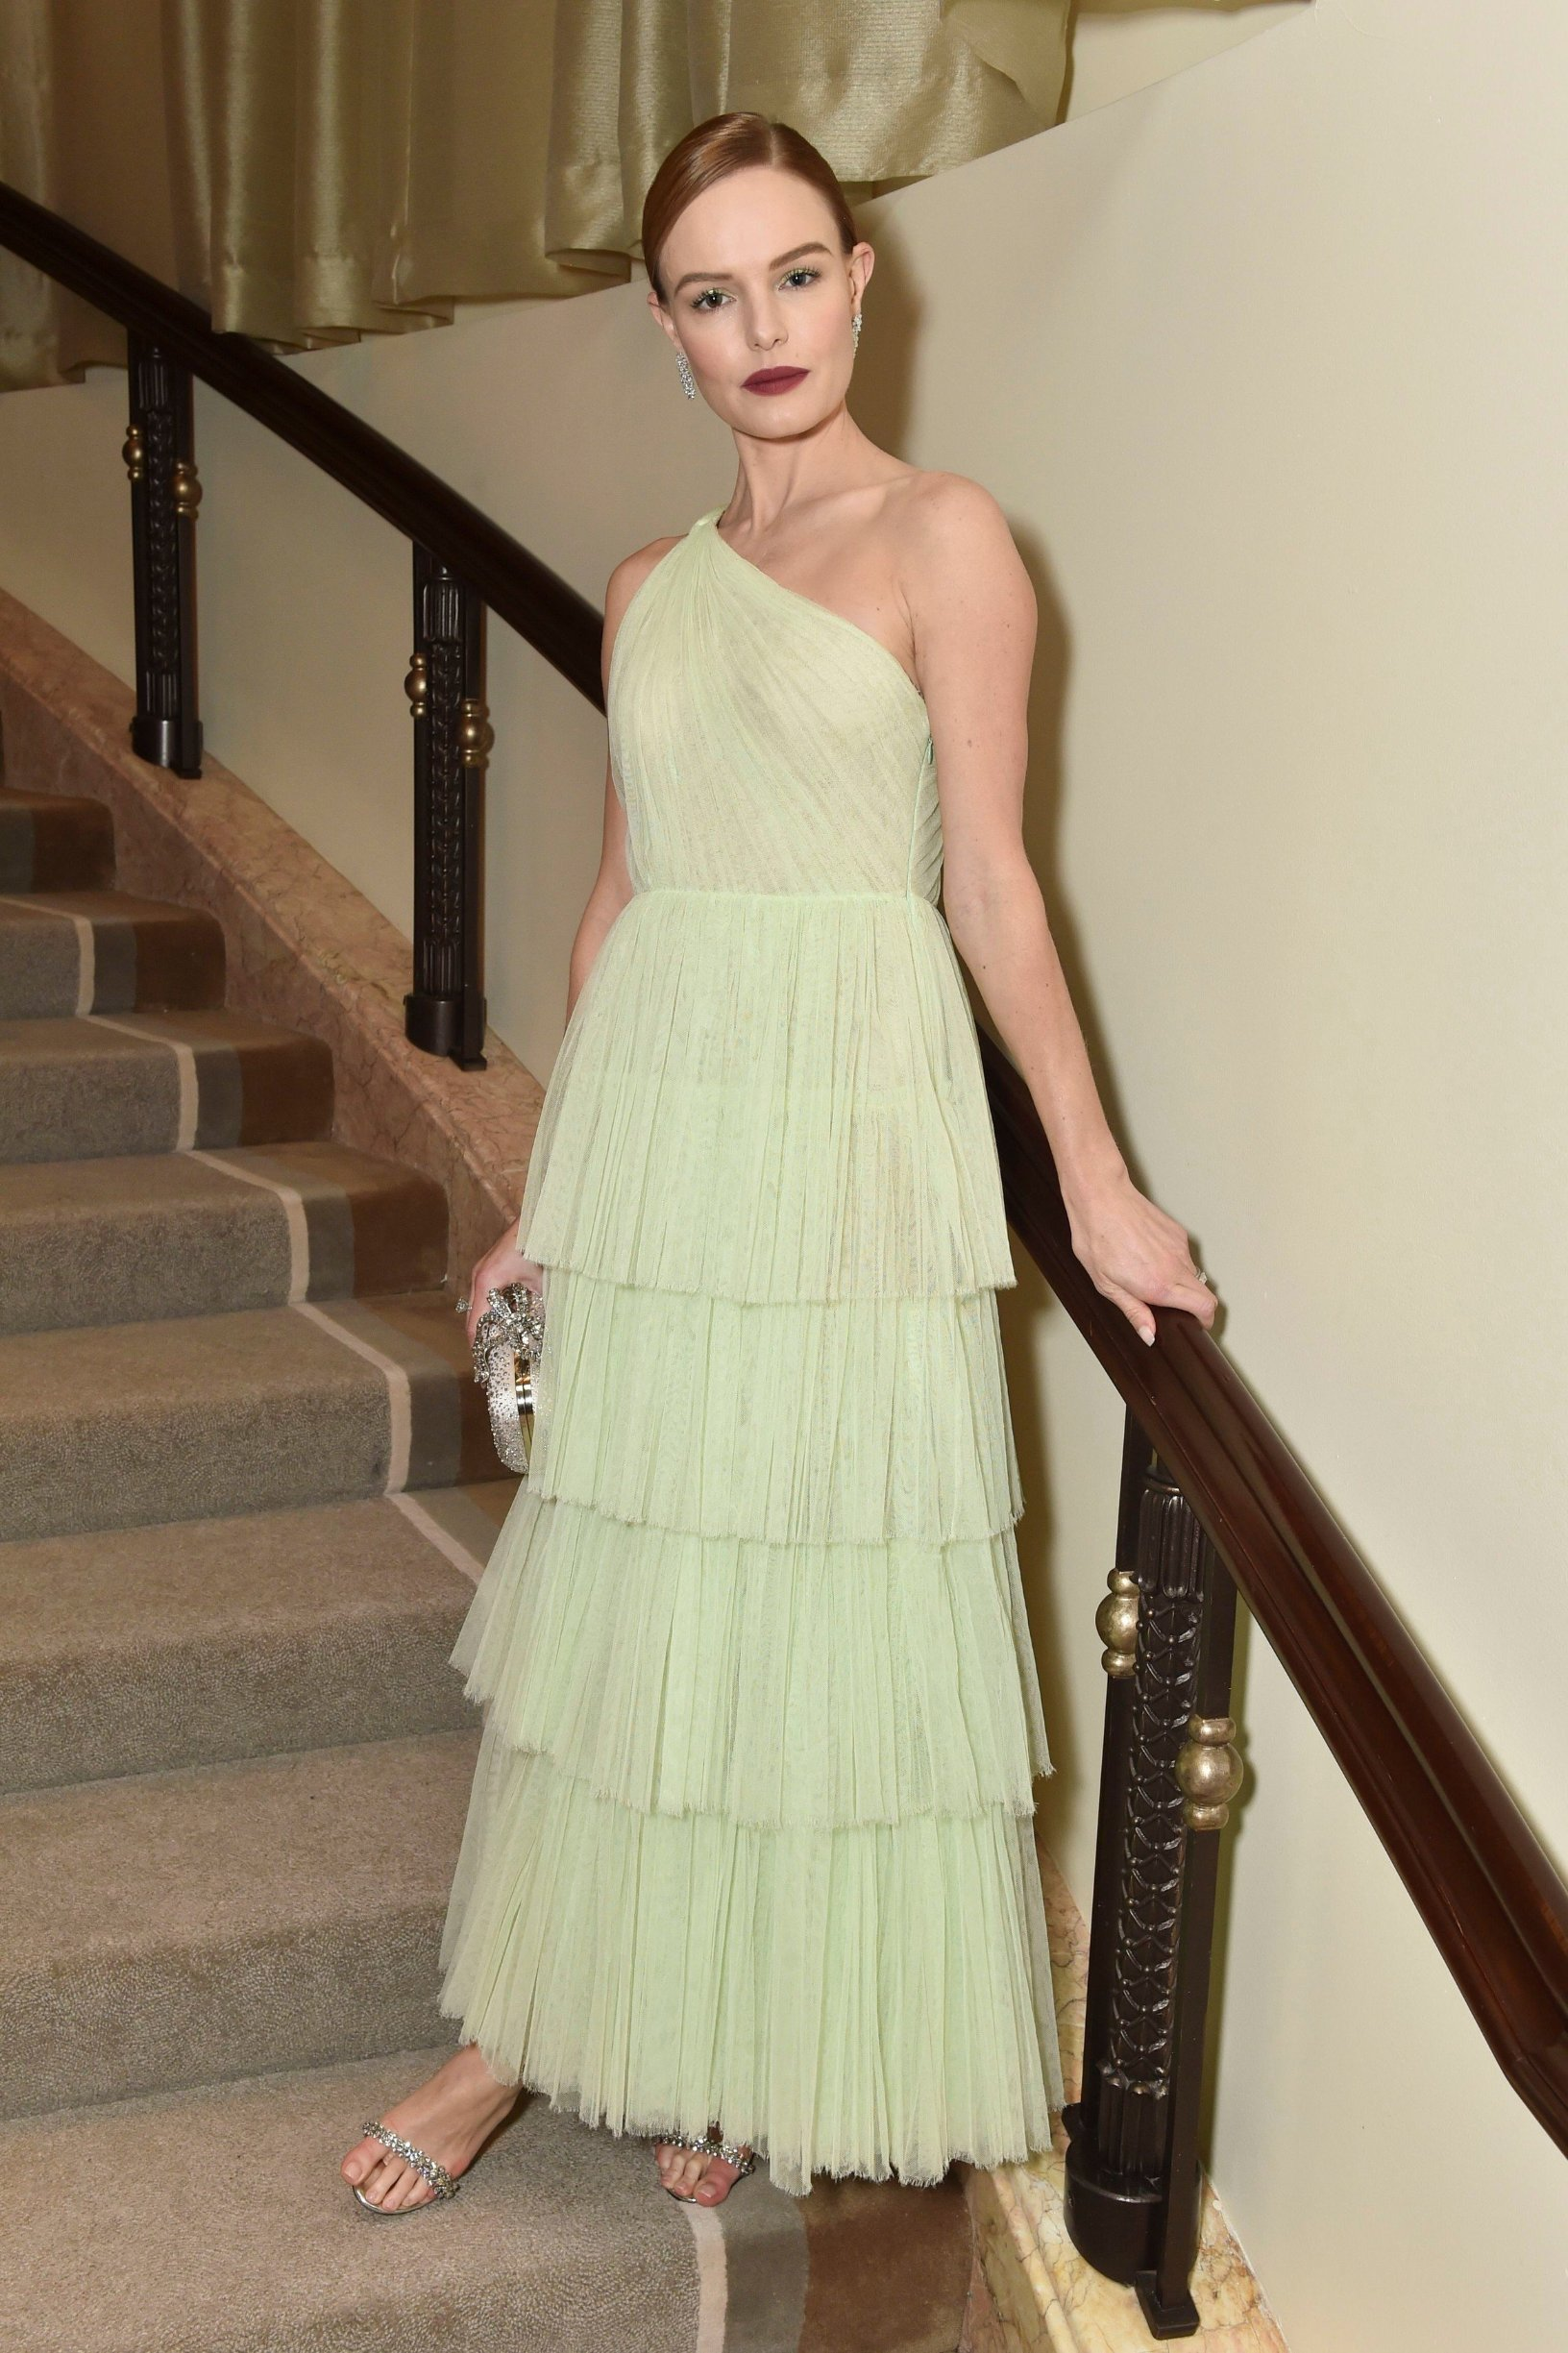 Kate Bosworth 2nd Annual Learning Lab Ventures Winter Gala, Arrivals, The Beverly Hills Hotel, Los Angeles, USA - 31 Jan 2019, Image: 411557388, License: Rights-managed, Restrictions: , Model Release: no, Credit line: Profimedia, TEMP Rex Features